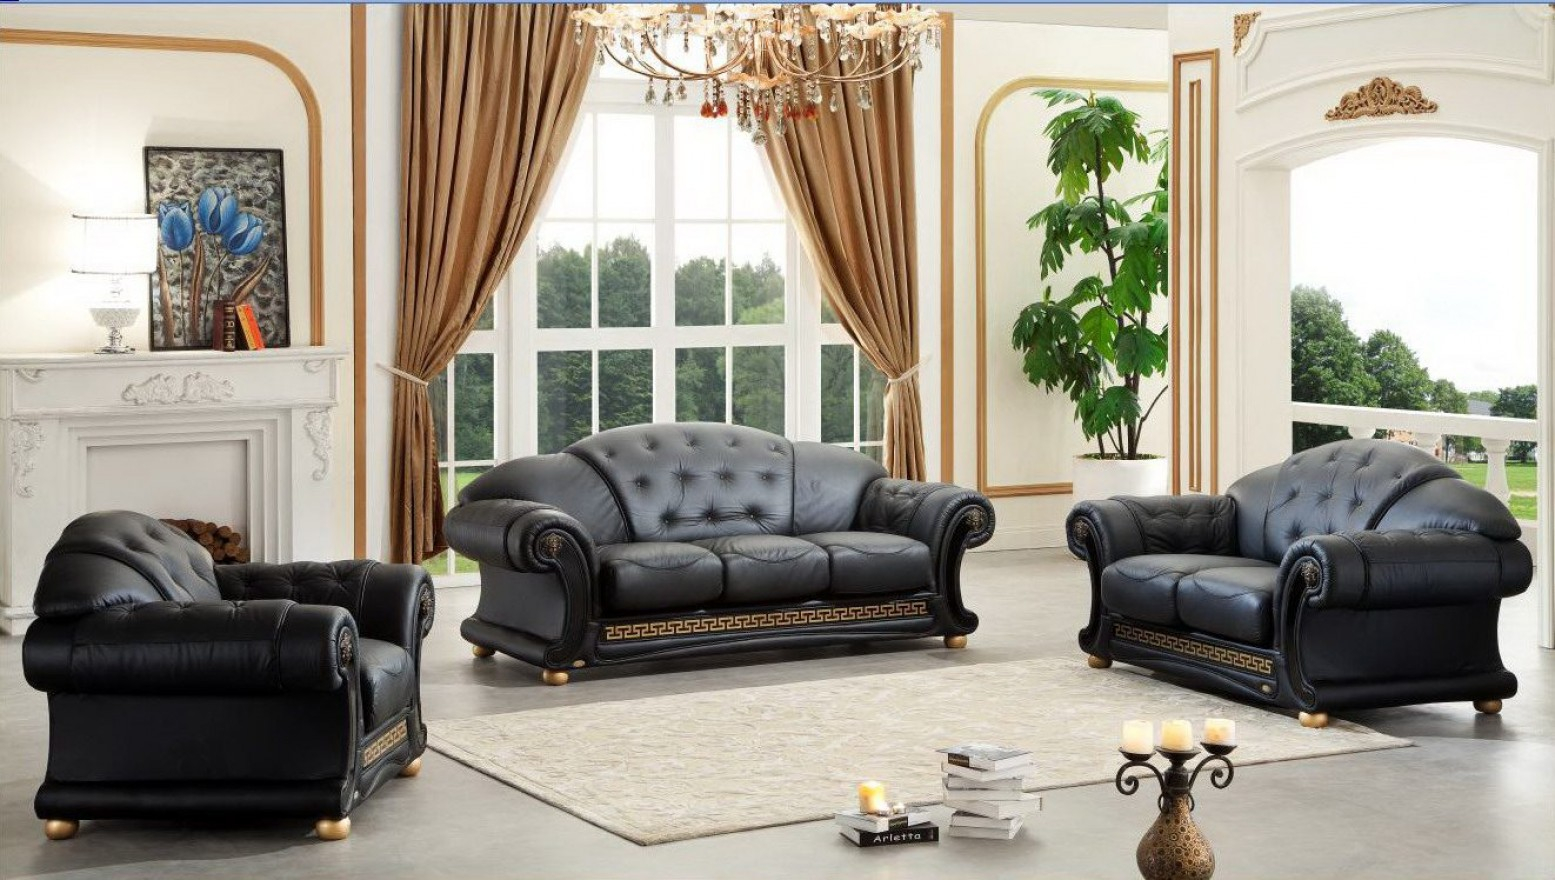 Apolo Leathersplit Living Room Set Esf Furniture Sohomod pertaining to 13 Smart Ways How to Craft Versace Living Room Set